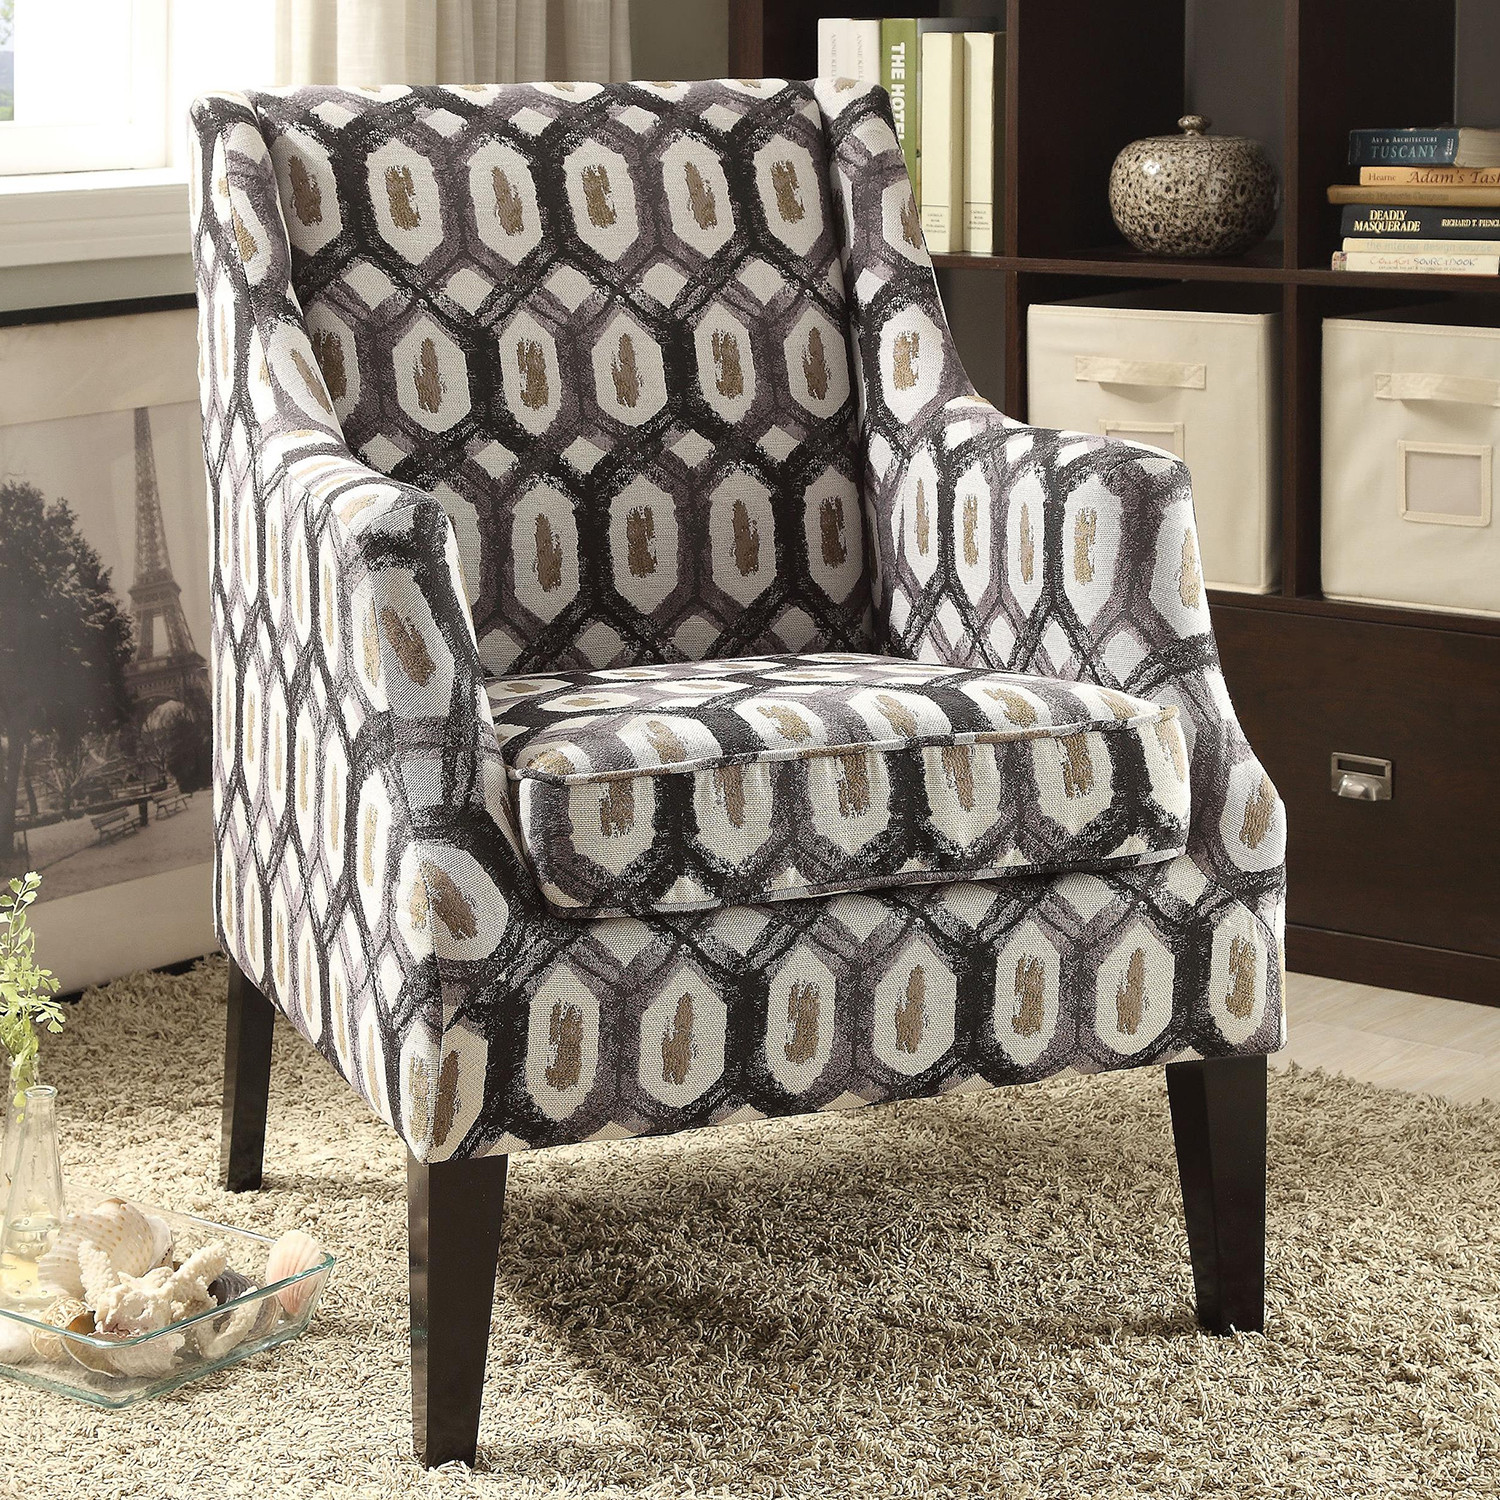 Stupendous Zarate Accent Chair In Pattern Fabric By Acme Furniture Alphanode Cool Chair Designs And Ideas Alphanodeonline